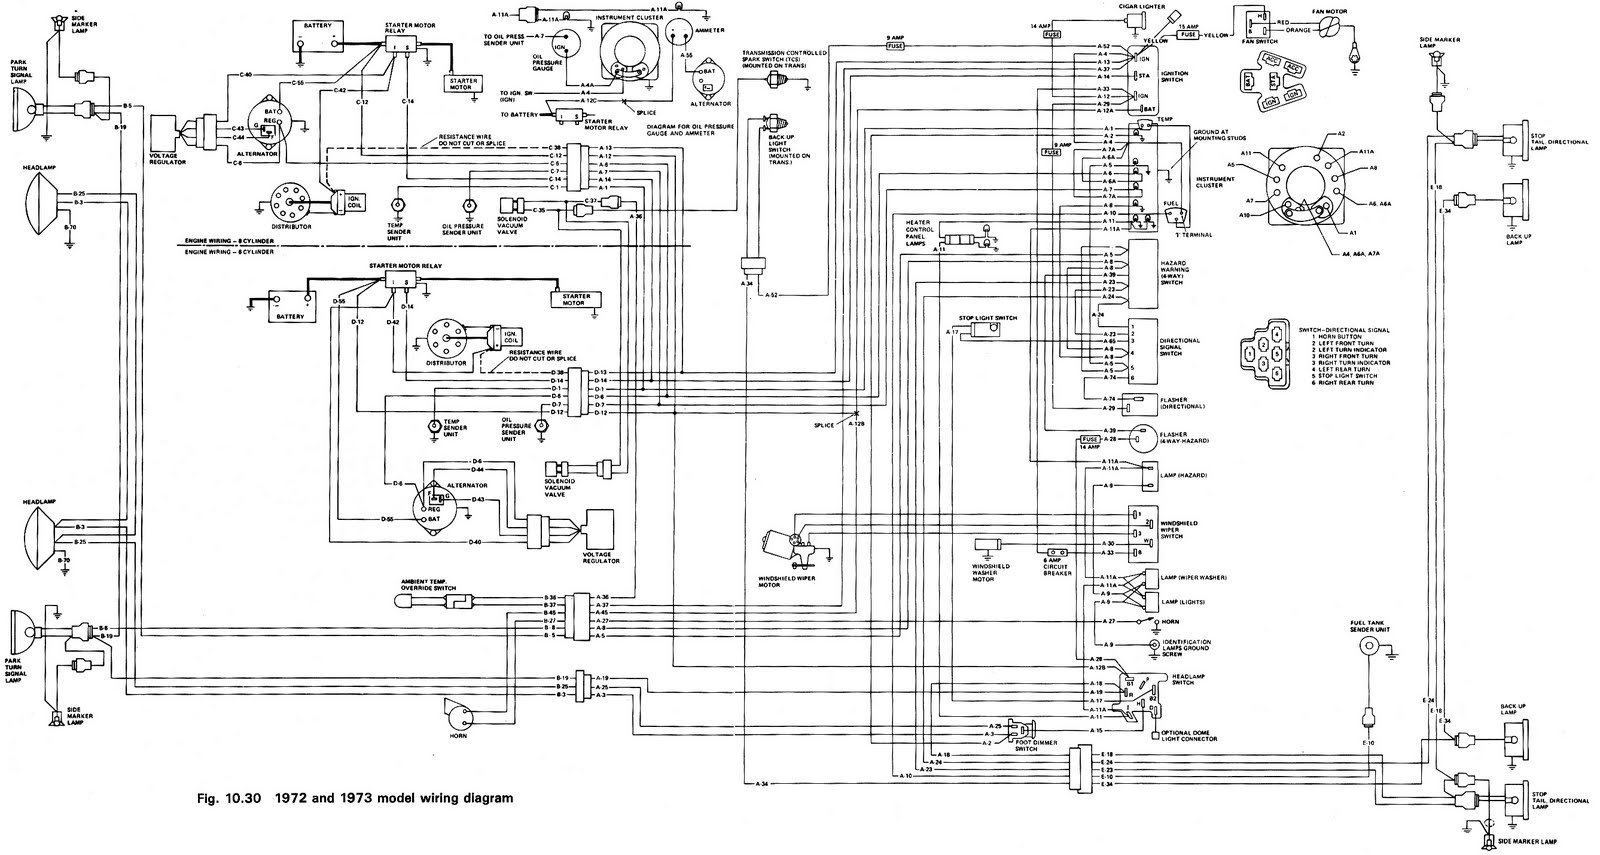 Cj5 Wiring Diagram Cj